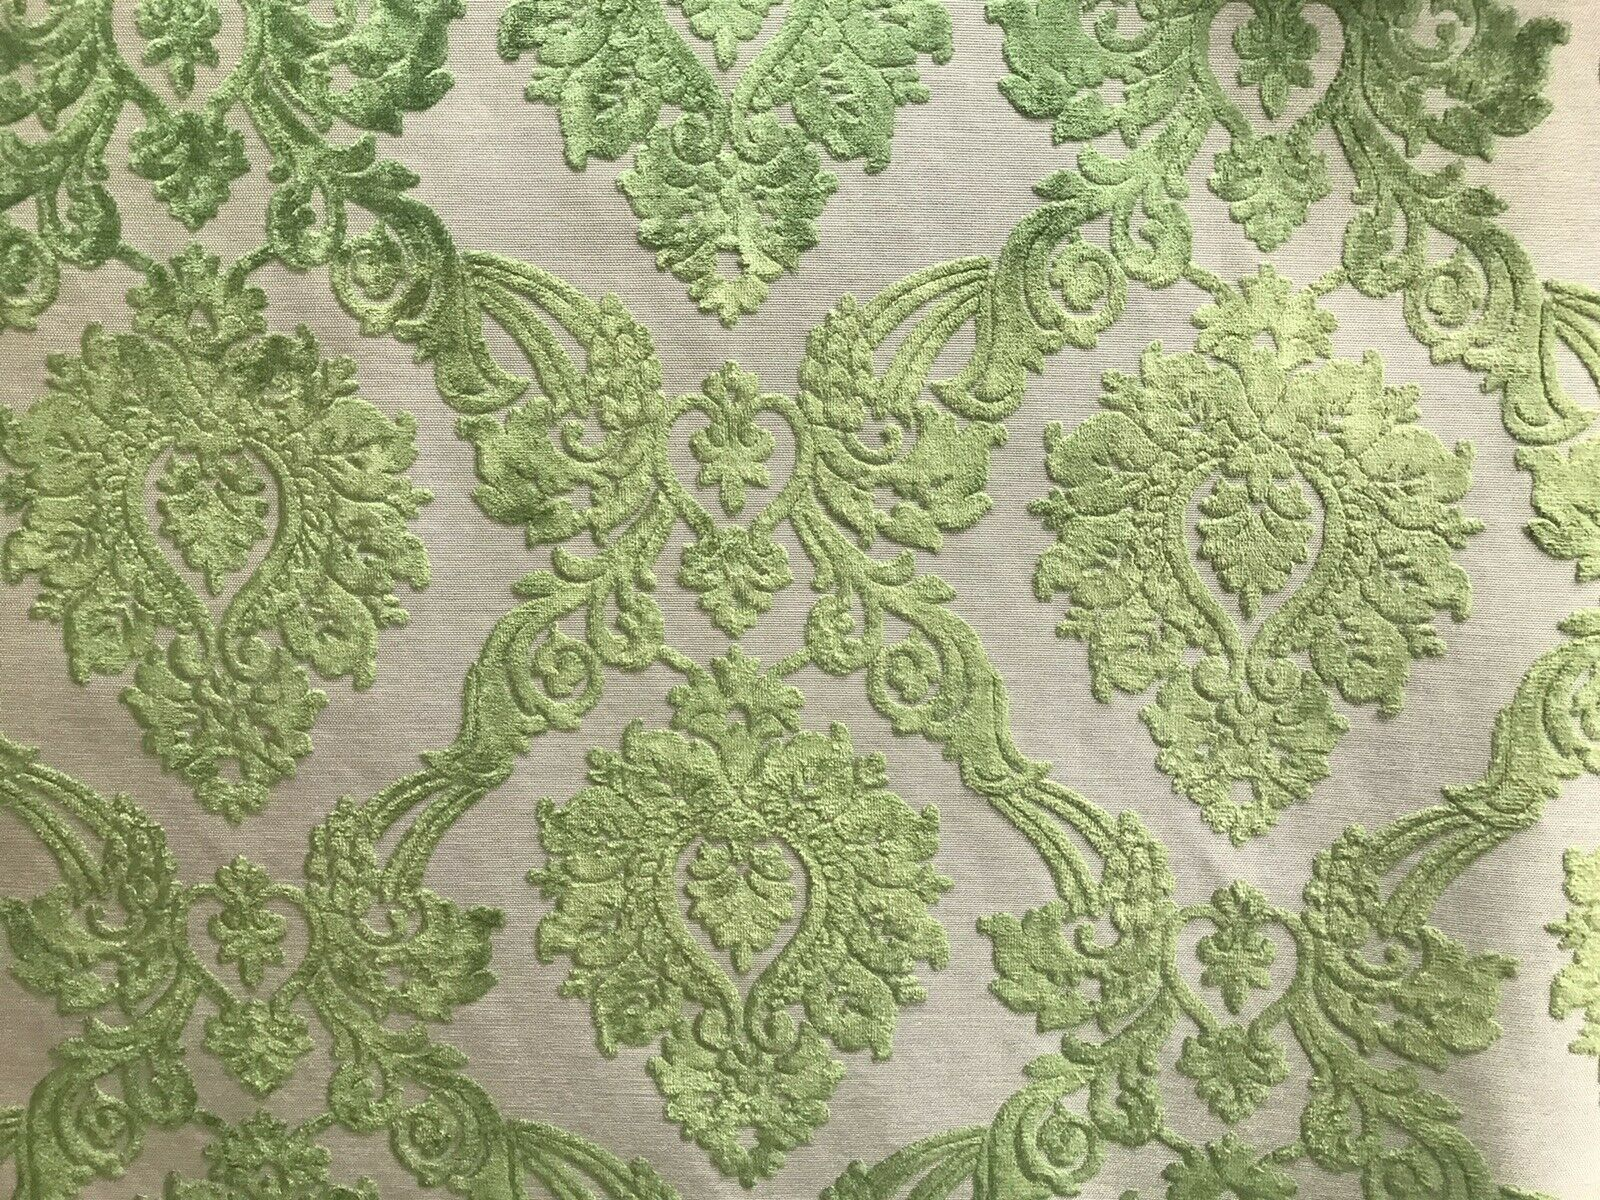 NEW Designer Velvet Chenille Burnout Damask Upholstery Fabric - Green BTY